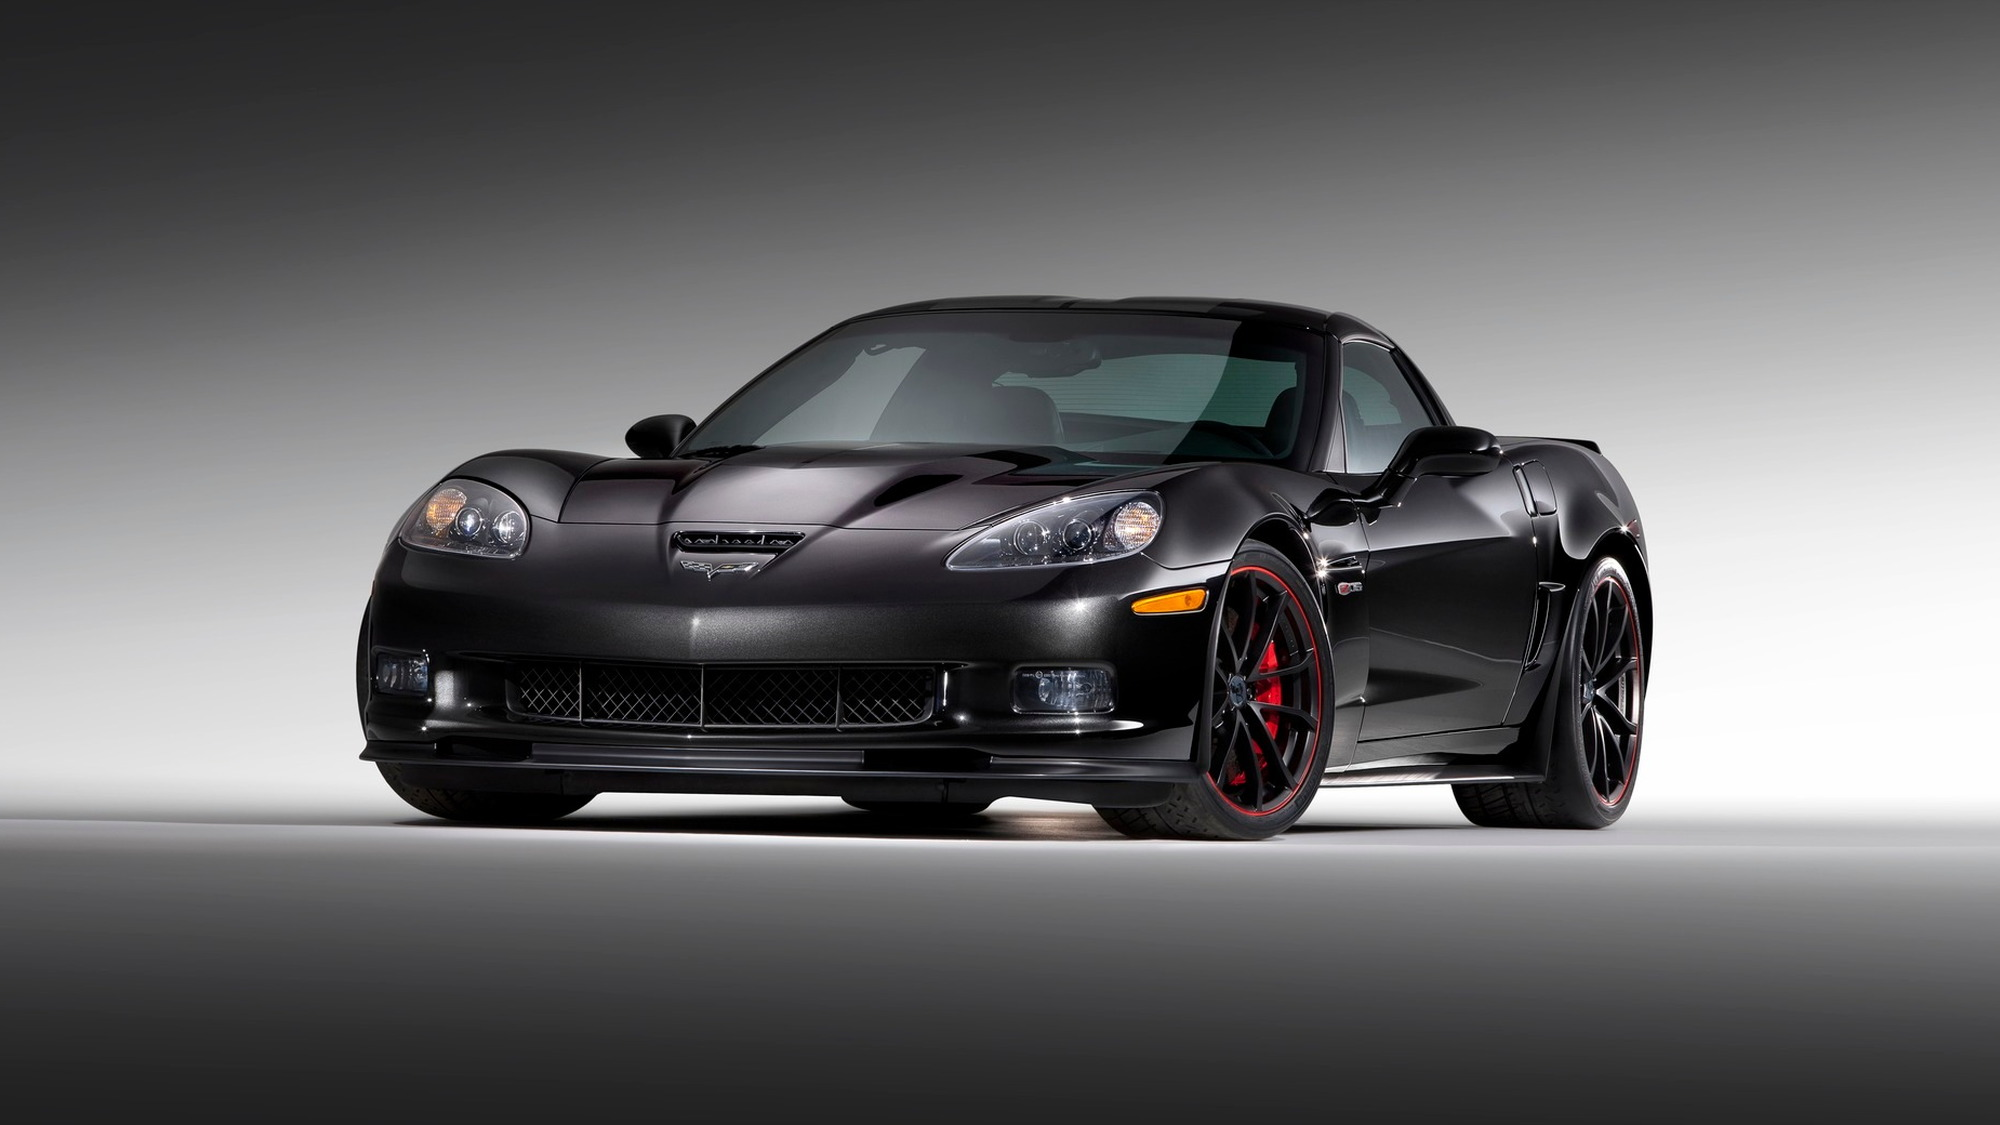 2012 Chevrolet Corvette Centennial Edition